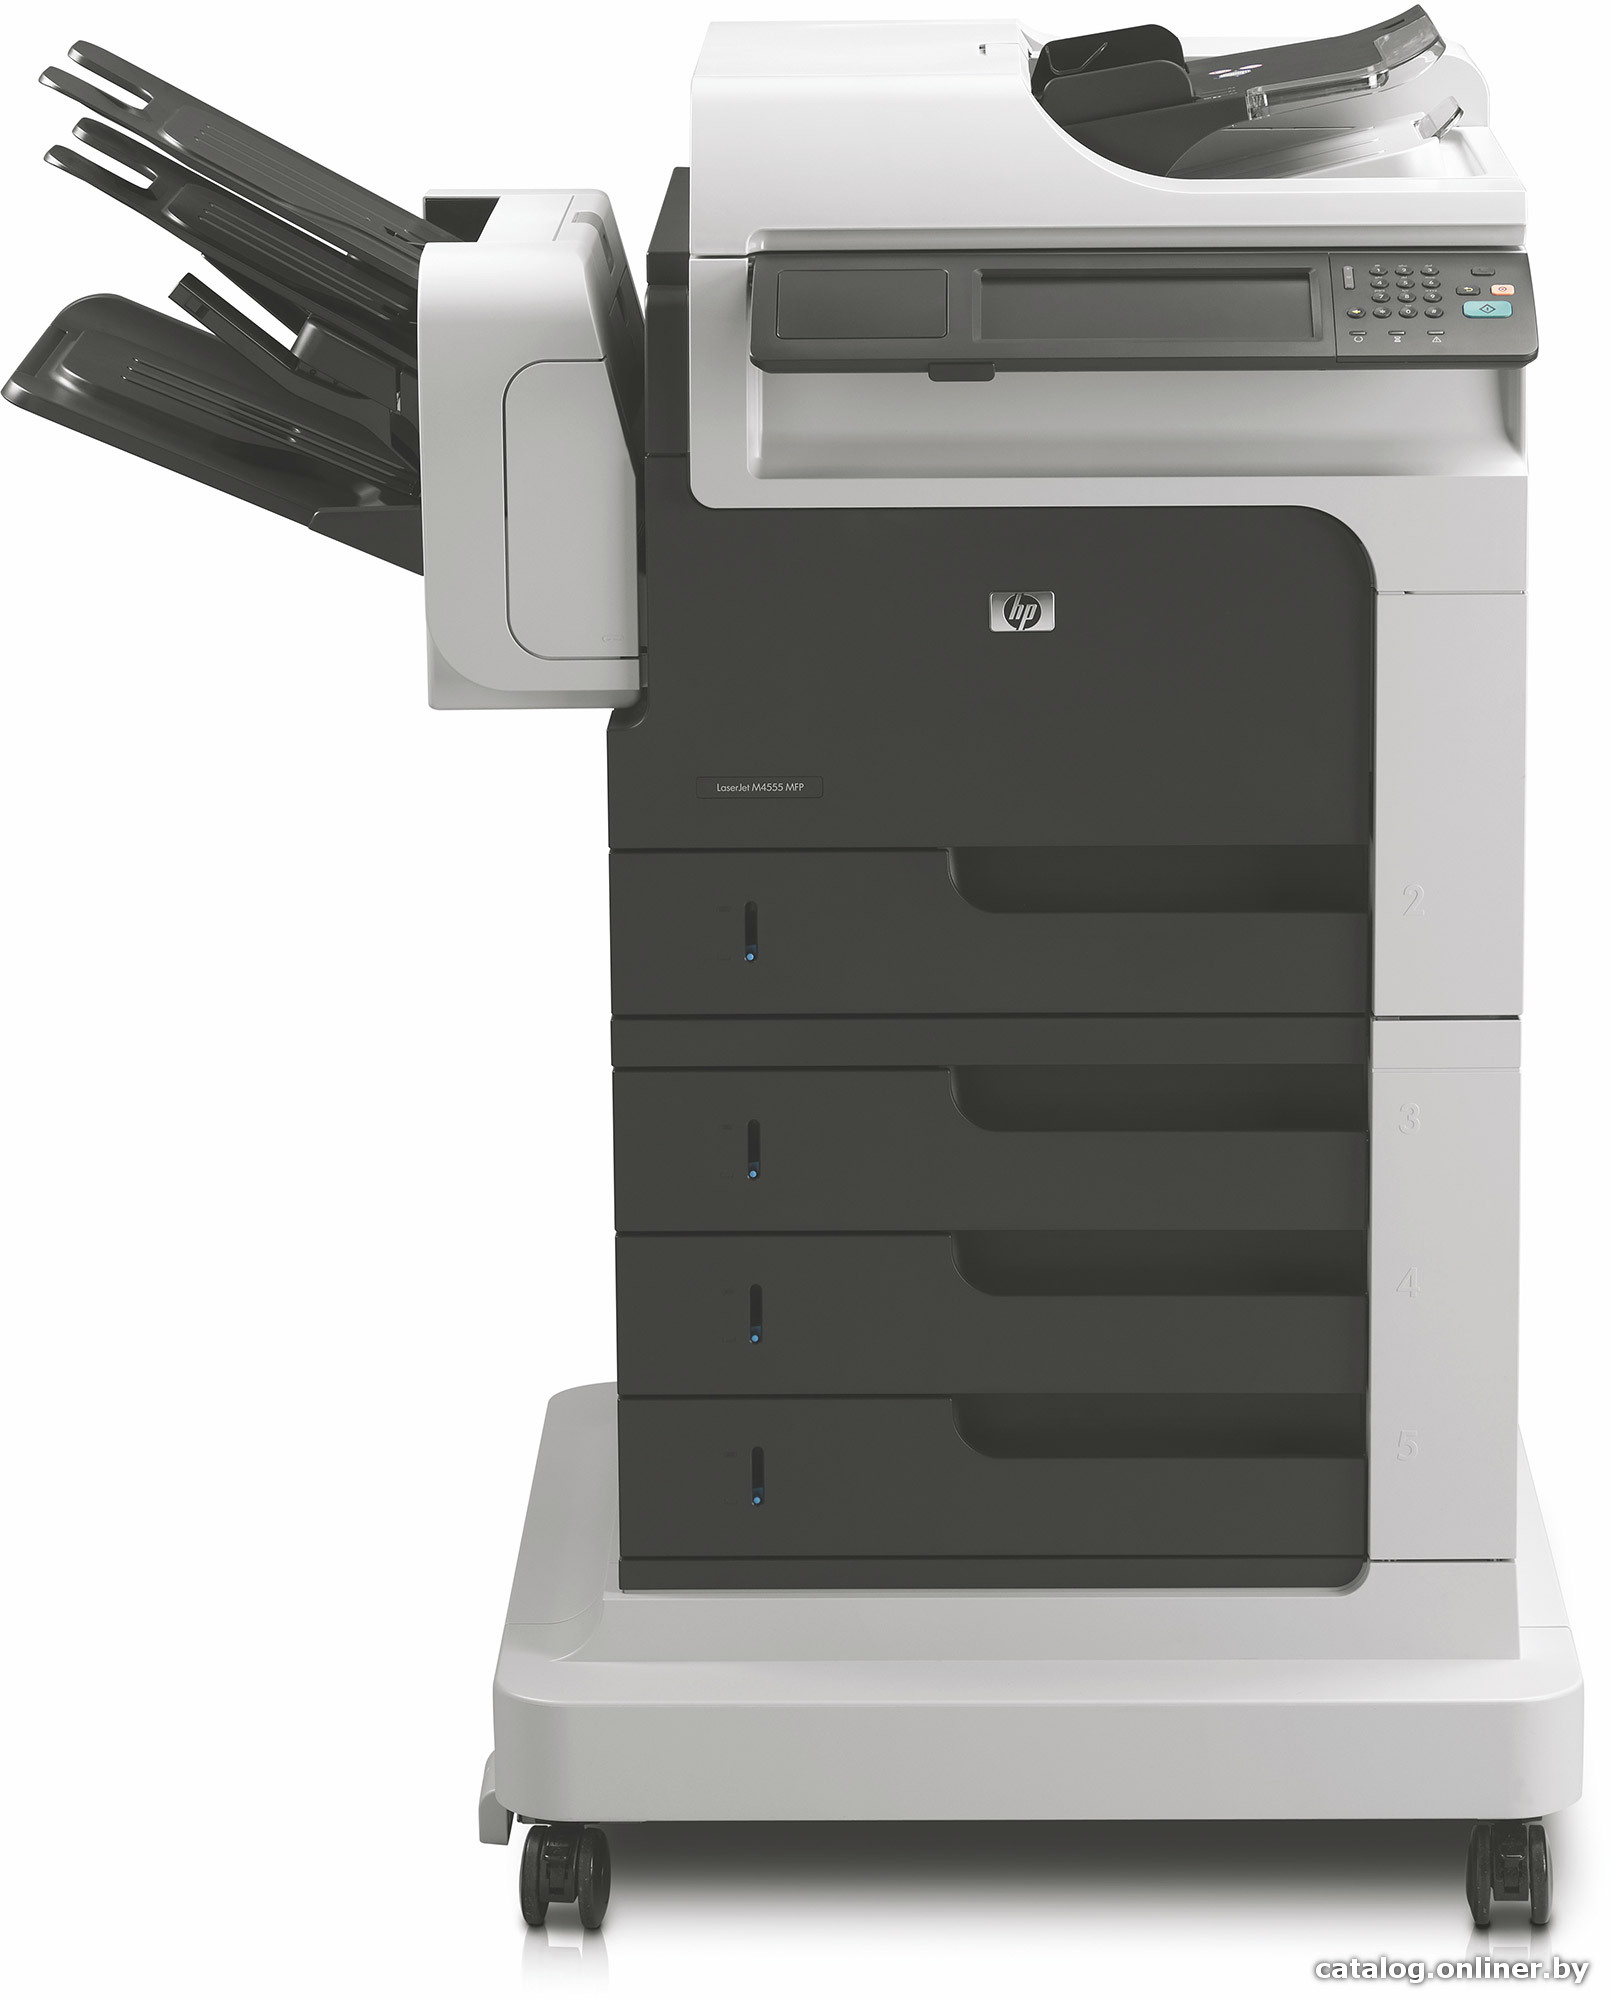 Hp M4555 Mfp Troubleshooting